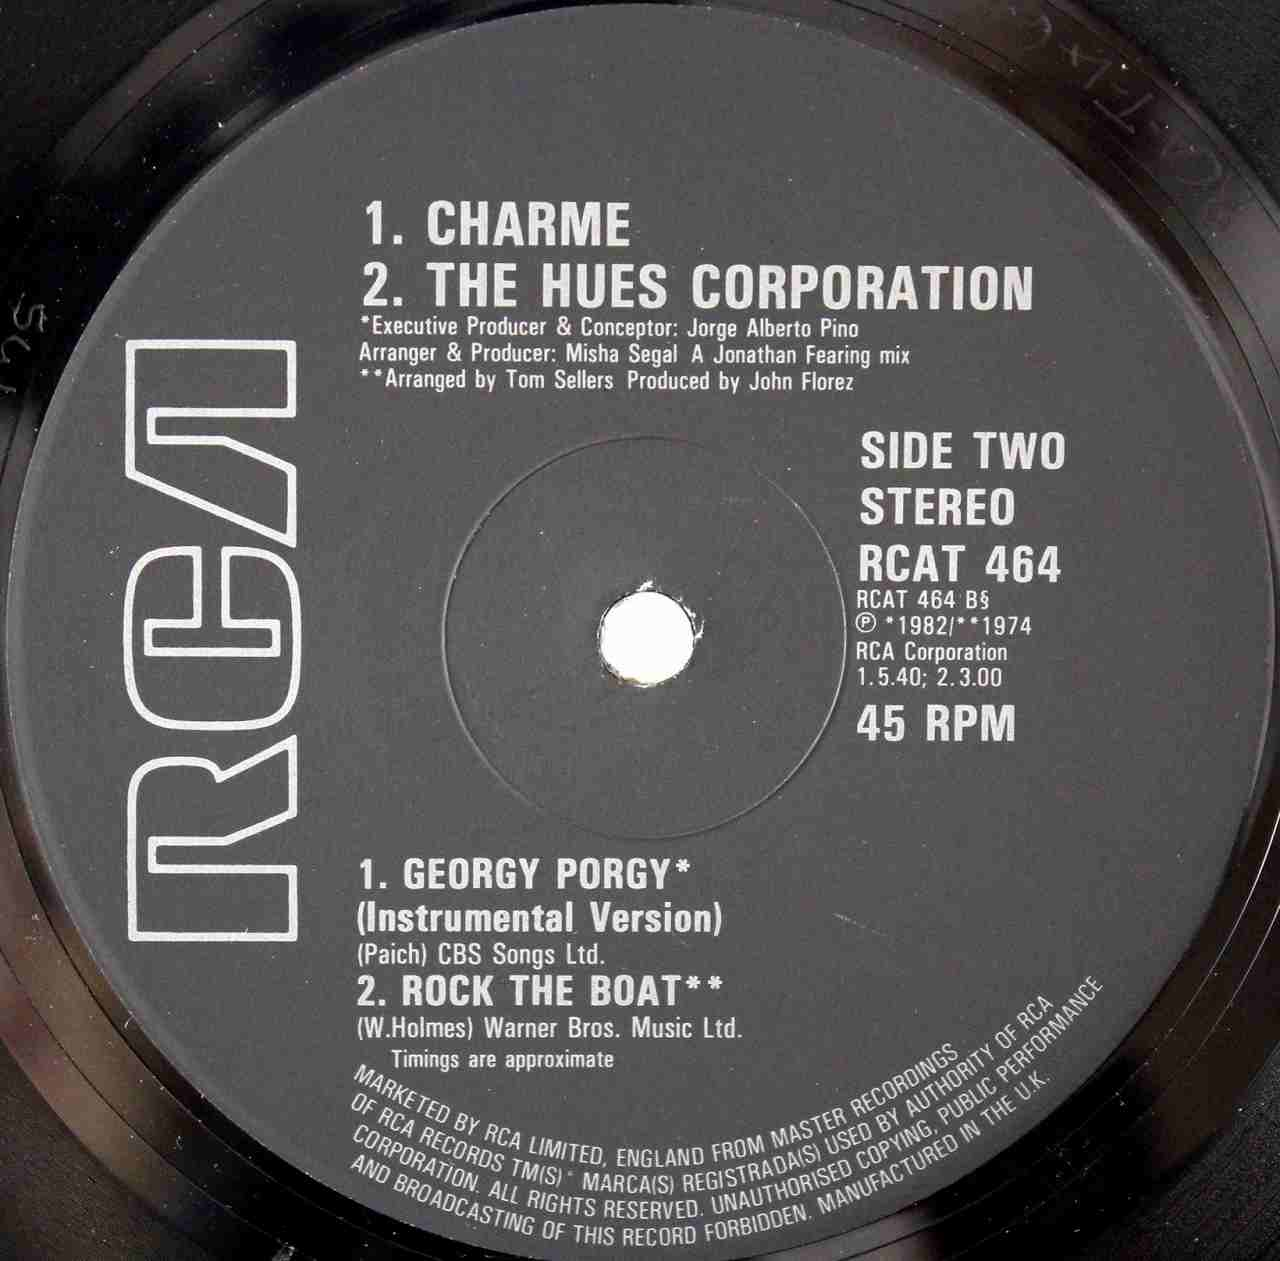 CHARME Feat LUTHER VANDROSS - Georgy Porgy 04